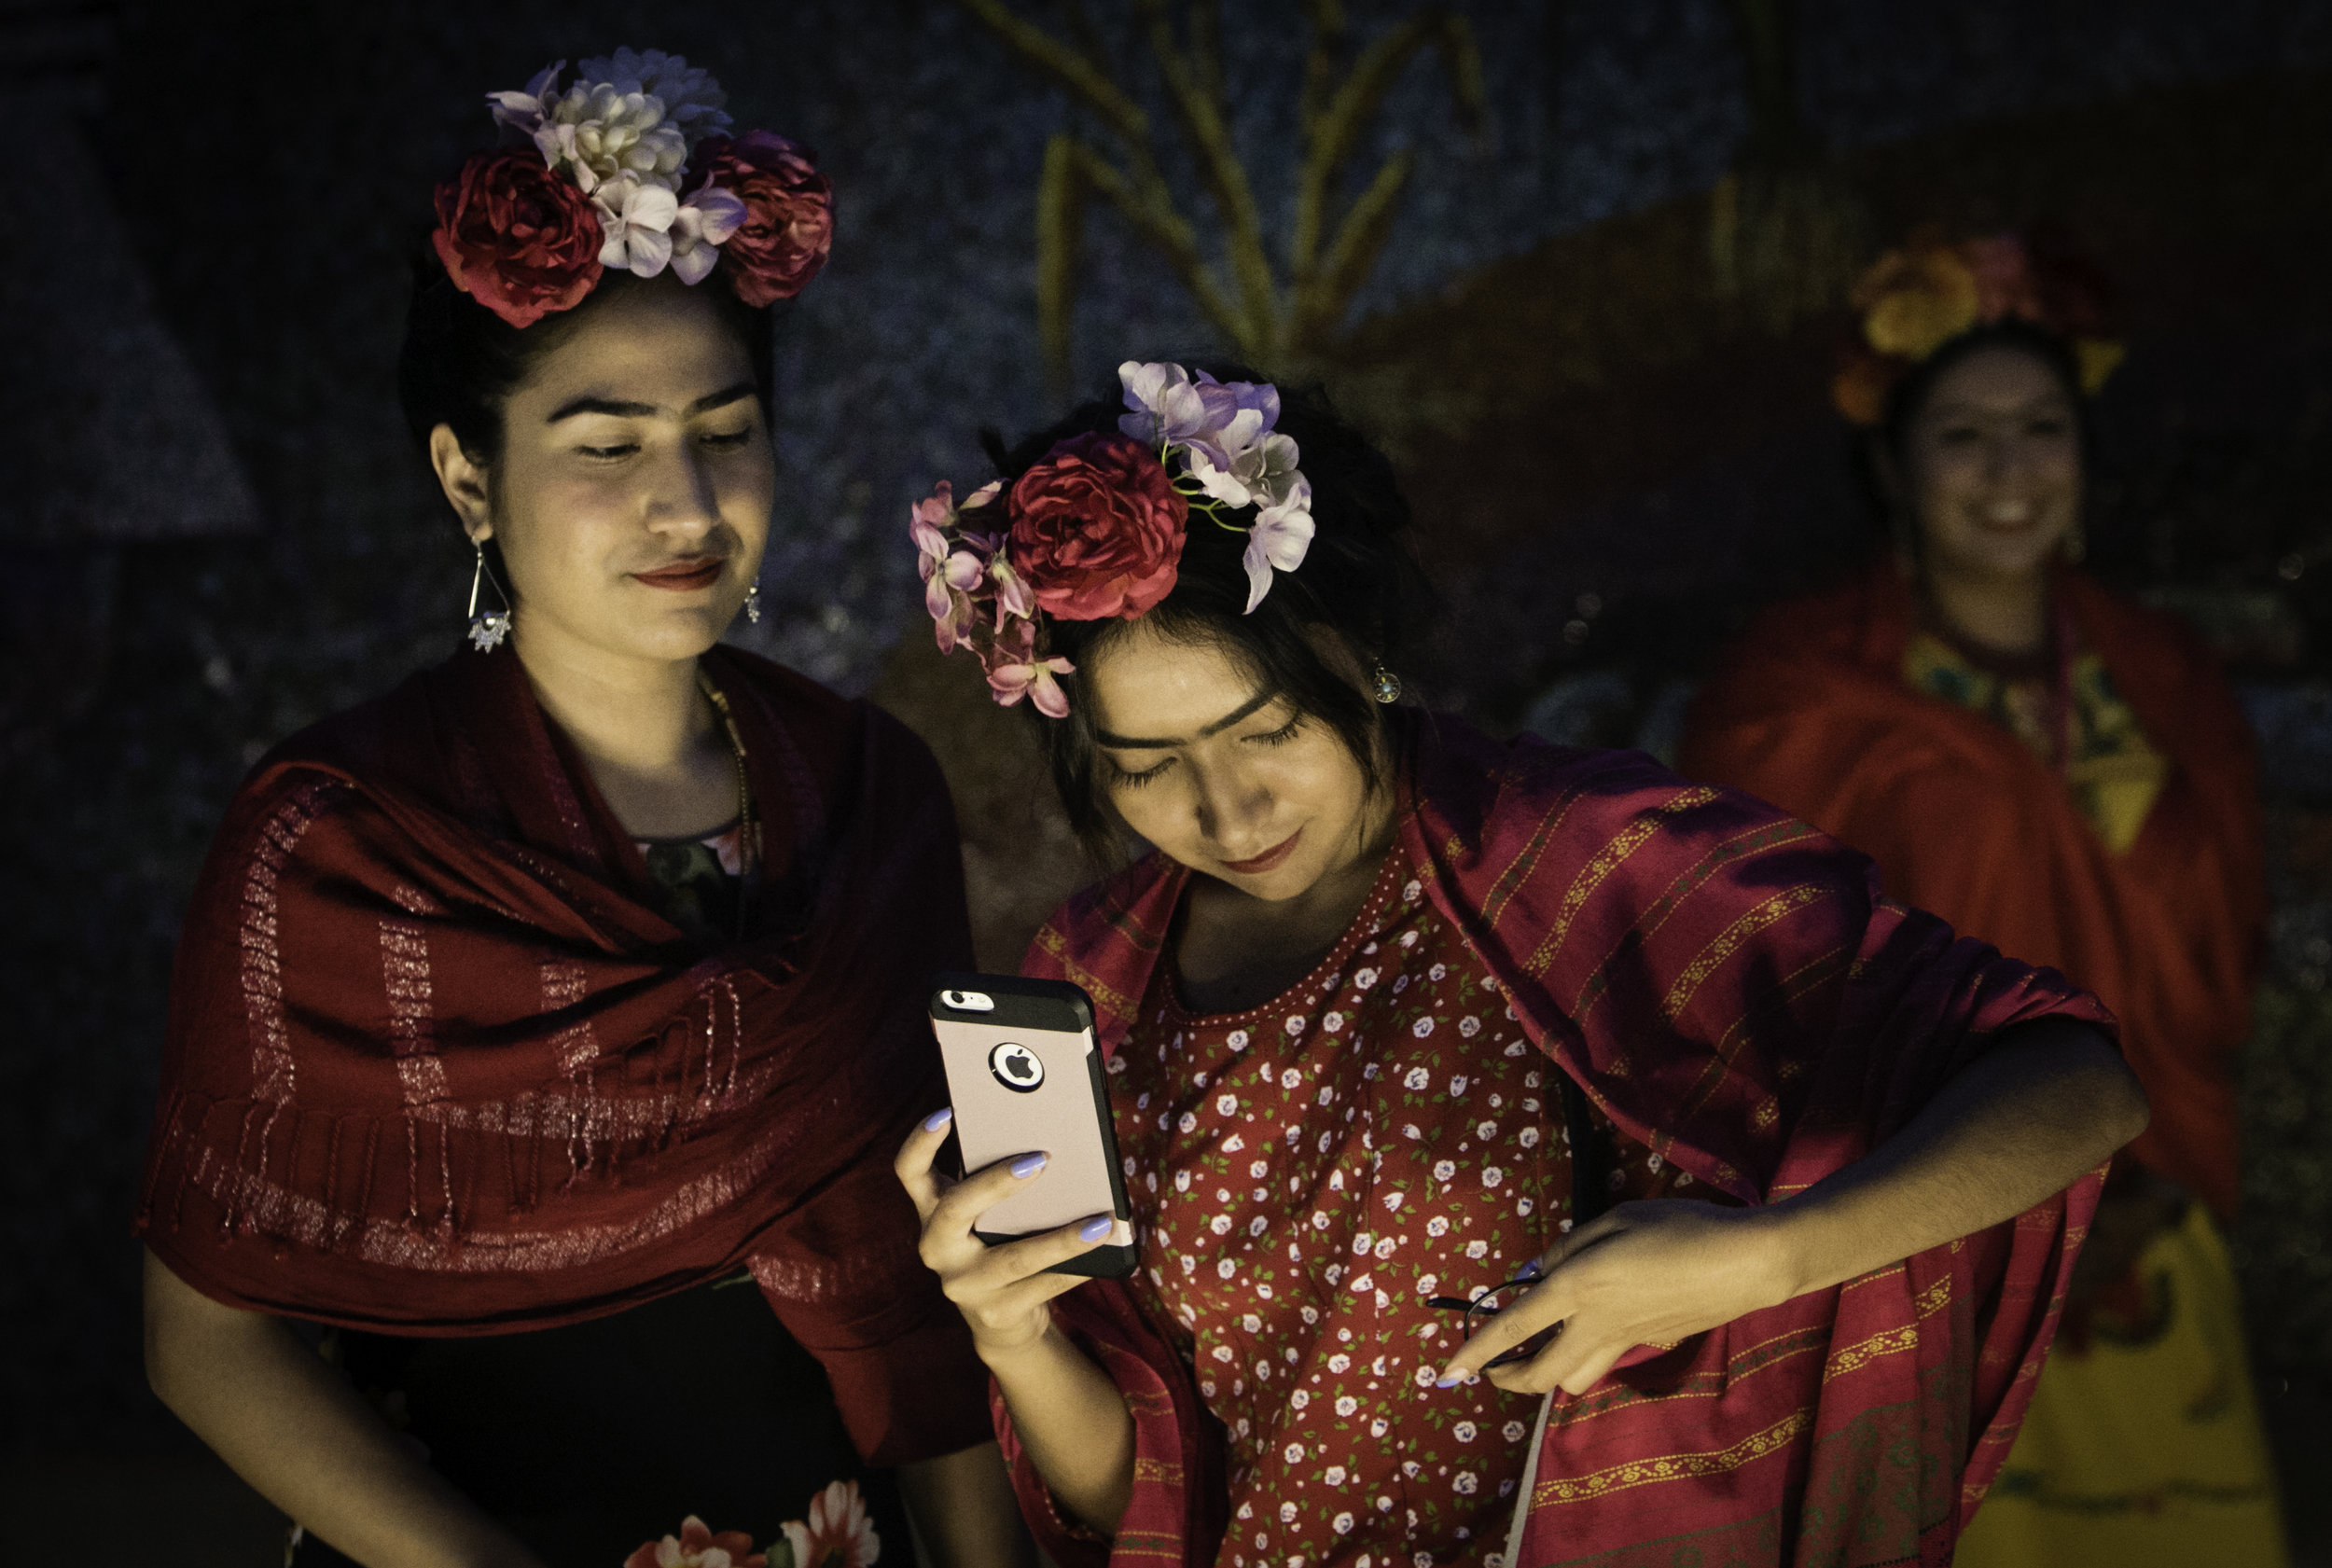 Sisters Grecia and Ilse Rangel find light to take photographs after the attempt to break the Guinness World Record for the largest gathering of people dressed as Frida Kahlo in one location at the Dallas Museum of the Art in Dallas on July 6, 2017. (Tailyr Irvine/The Dallas Morning News)